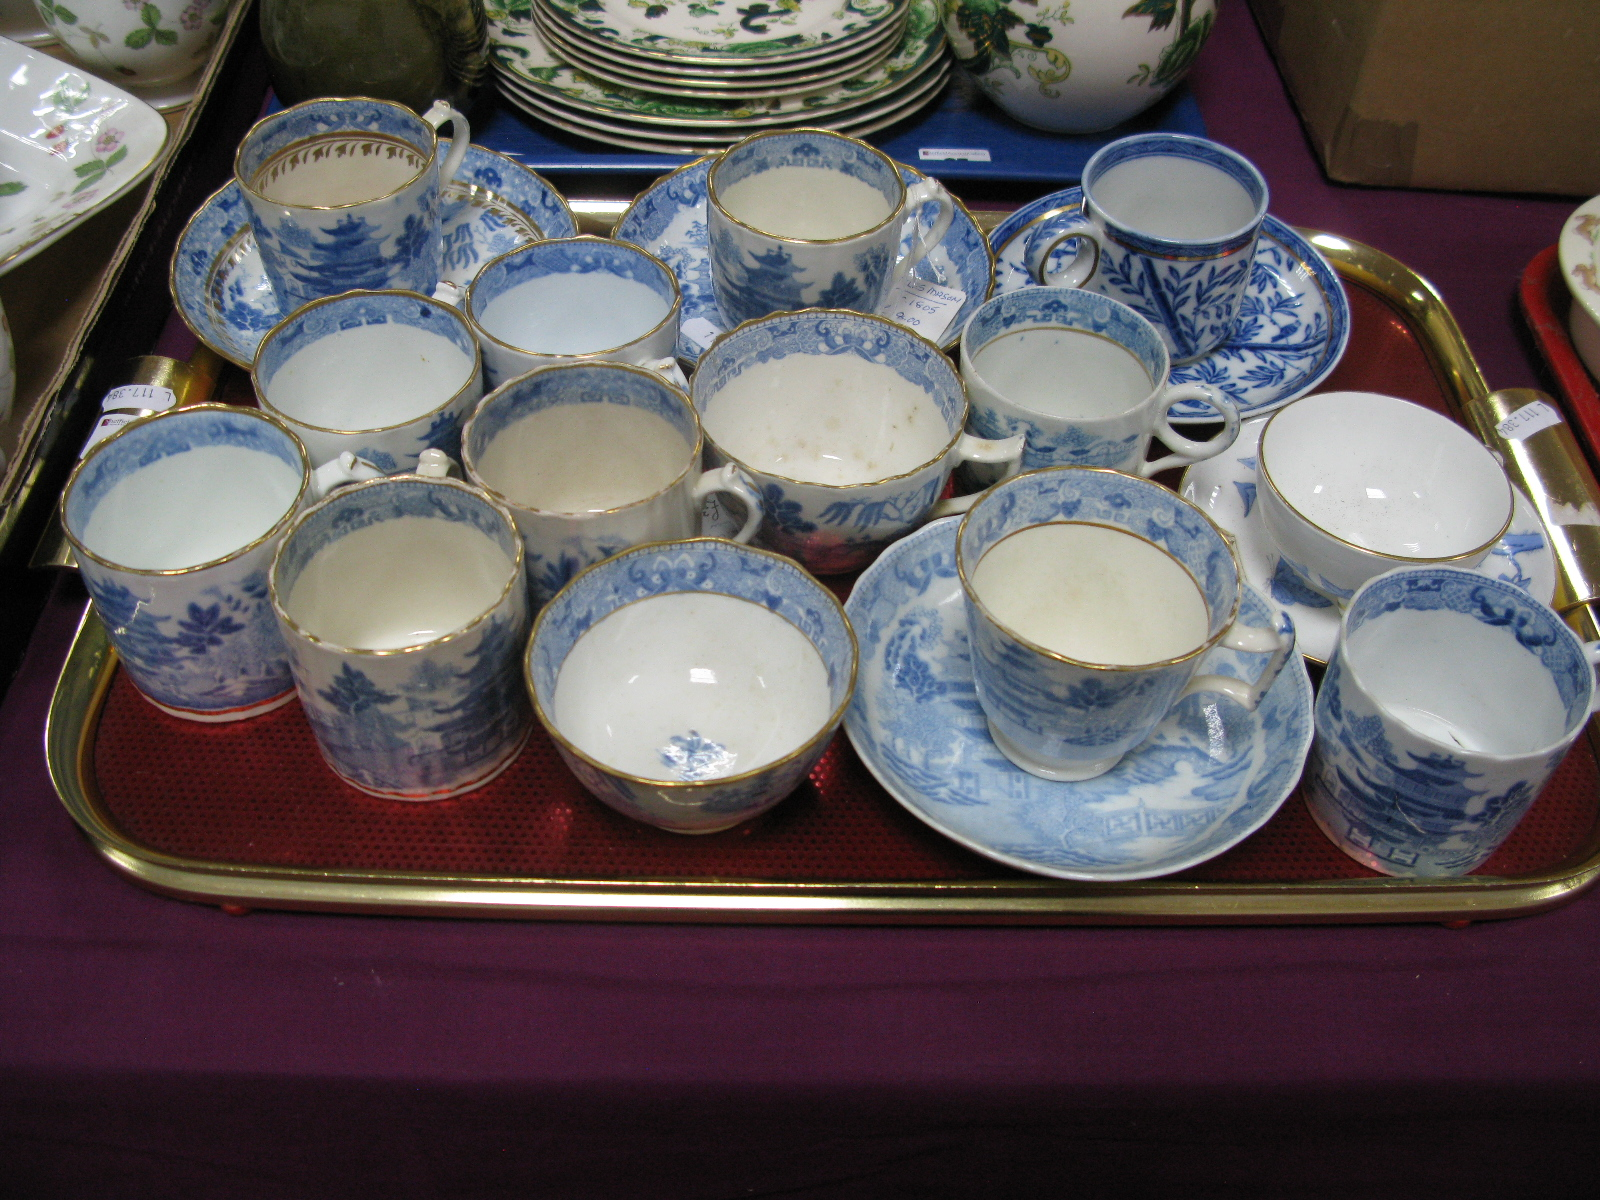 Lot 26 - Miles Mason Cups and Saucers, single cups, Davenport cup and saucer etc:- One Tray